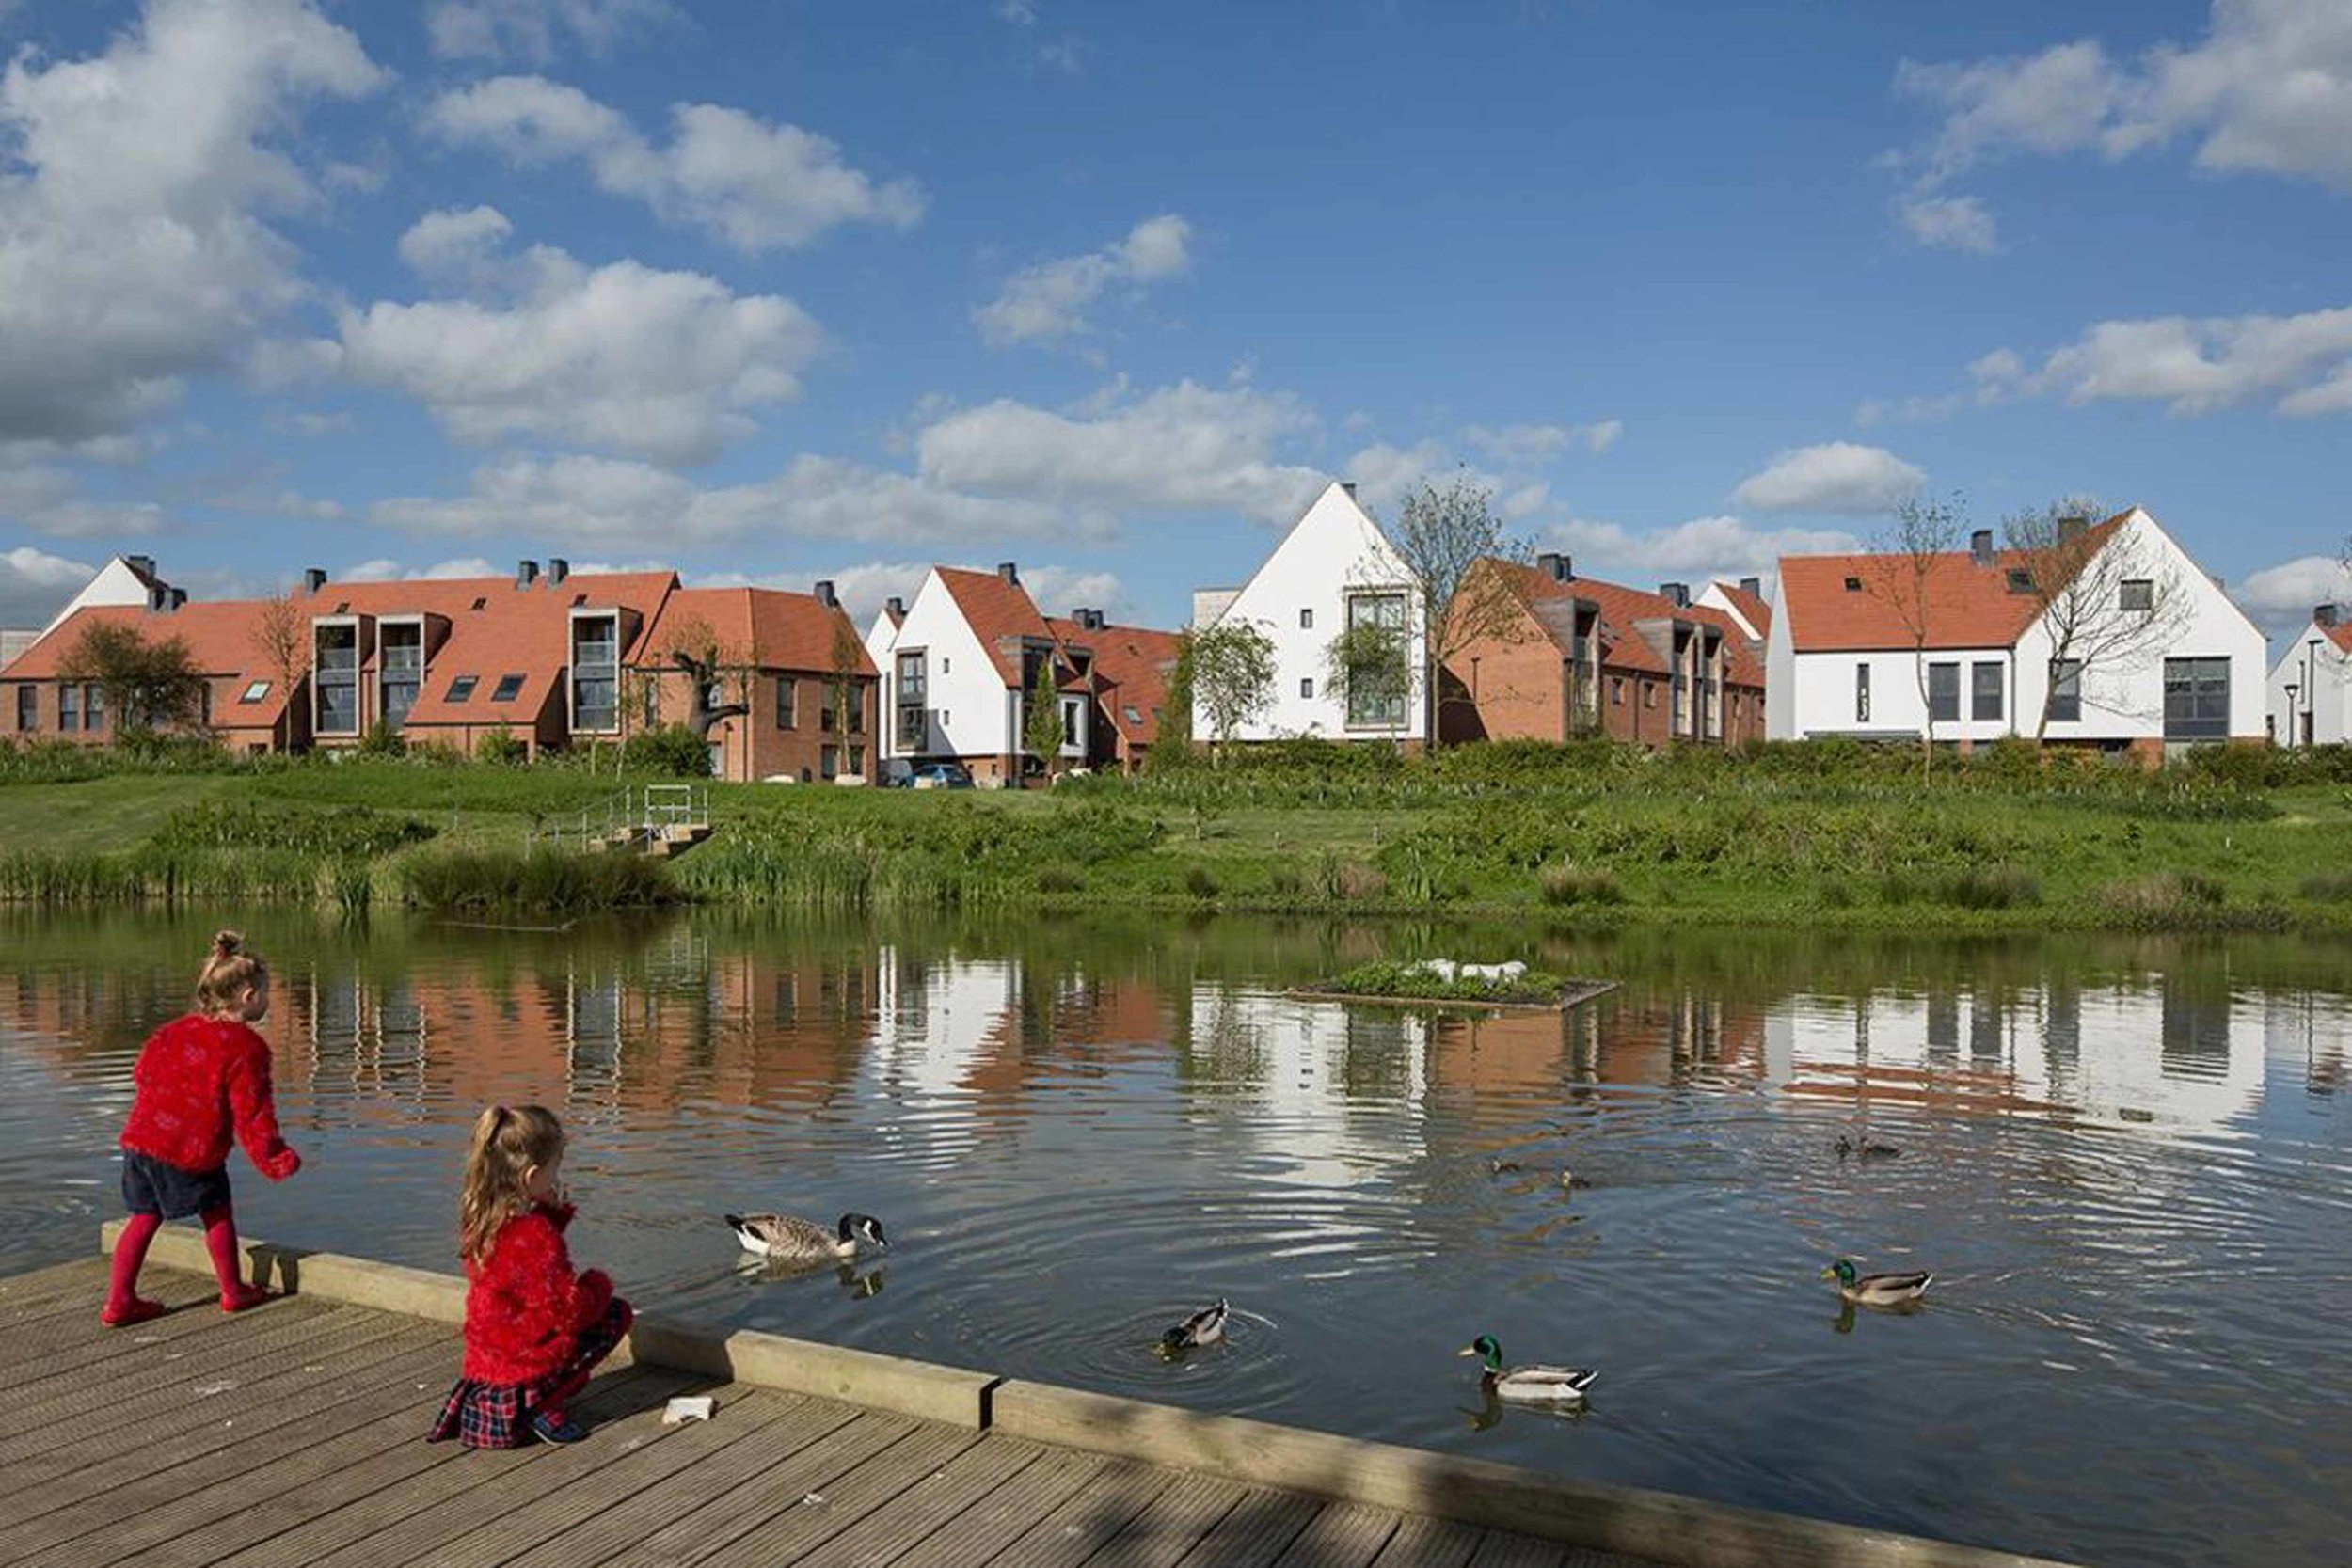 derwenthorpe phase one housing, york by studio partington. © tim crocker